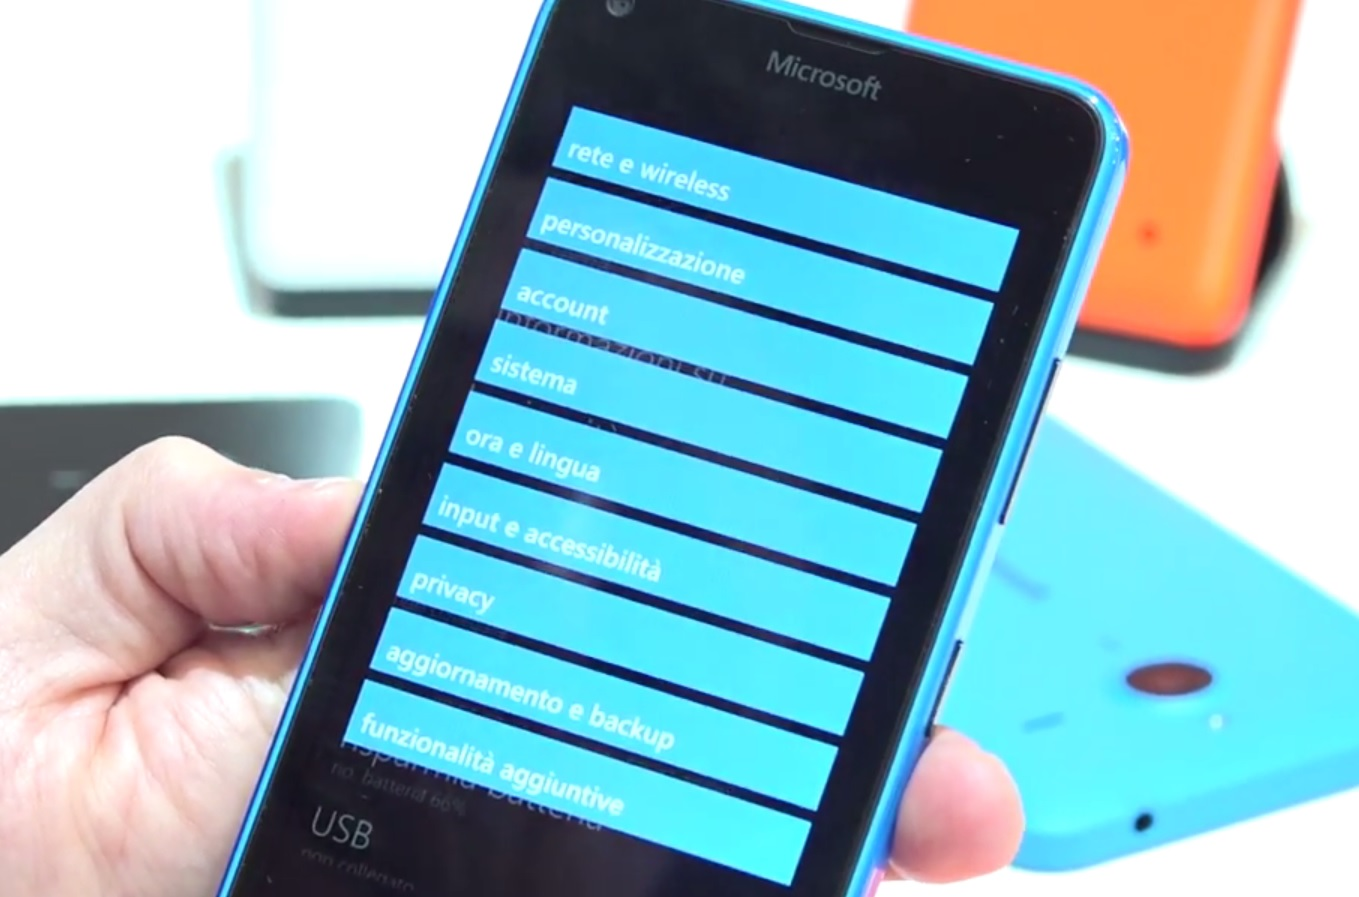 windows_phone_8.1_update2_menu